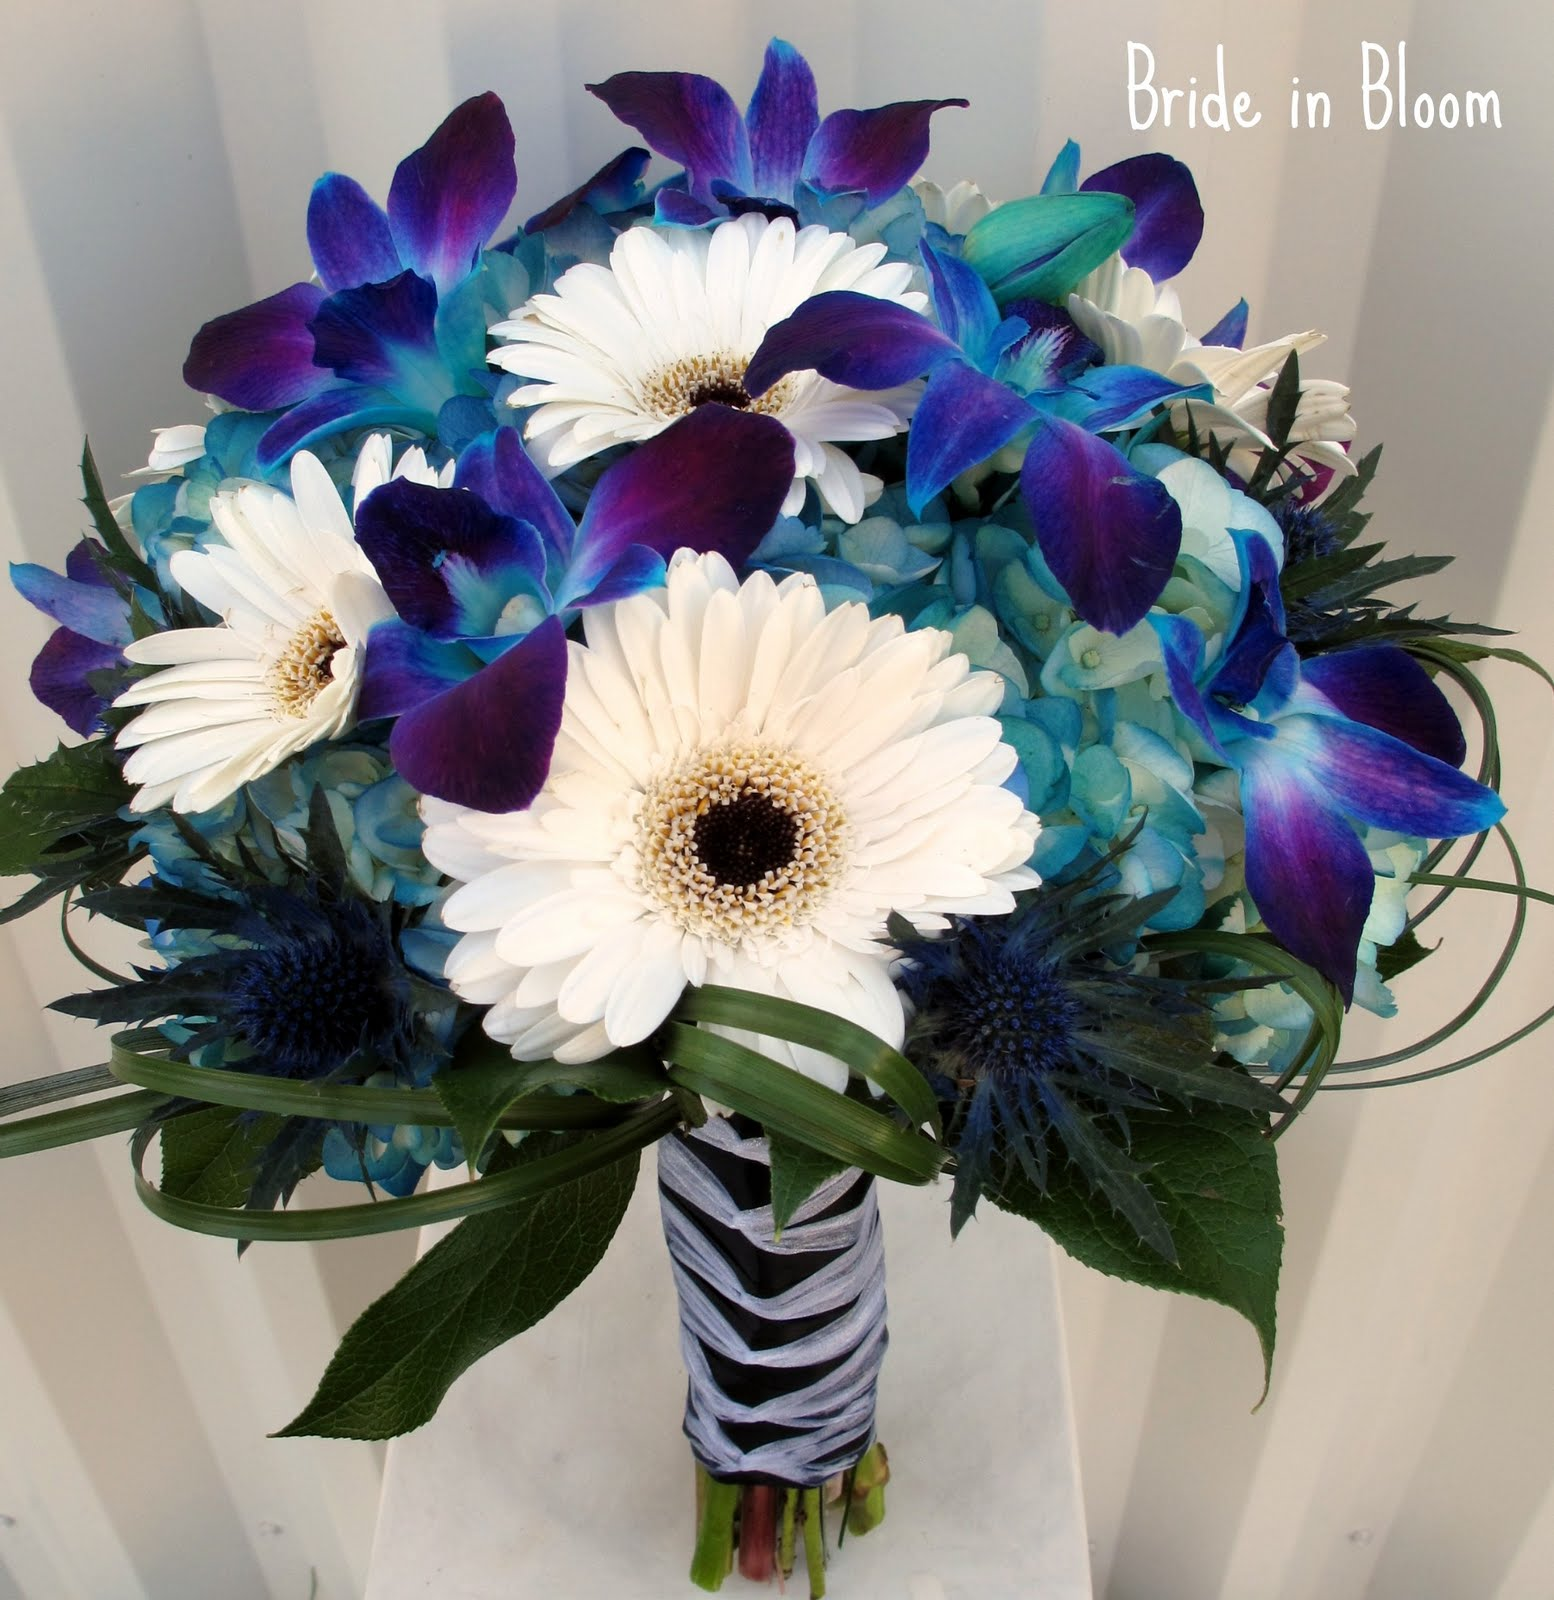 Bride in Bloom Blue orchid bridal bouquets